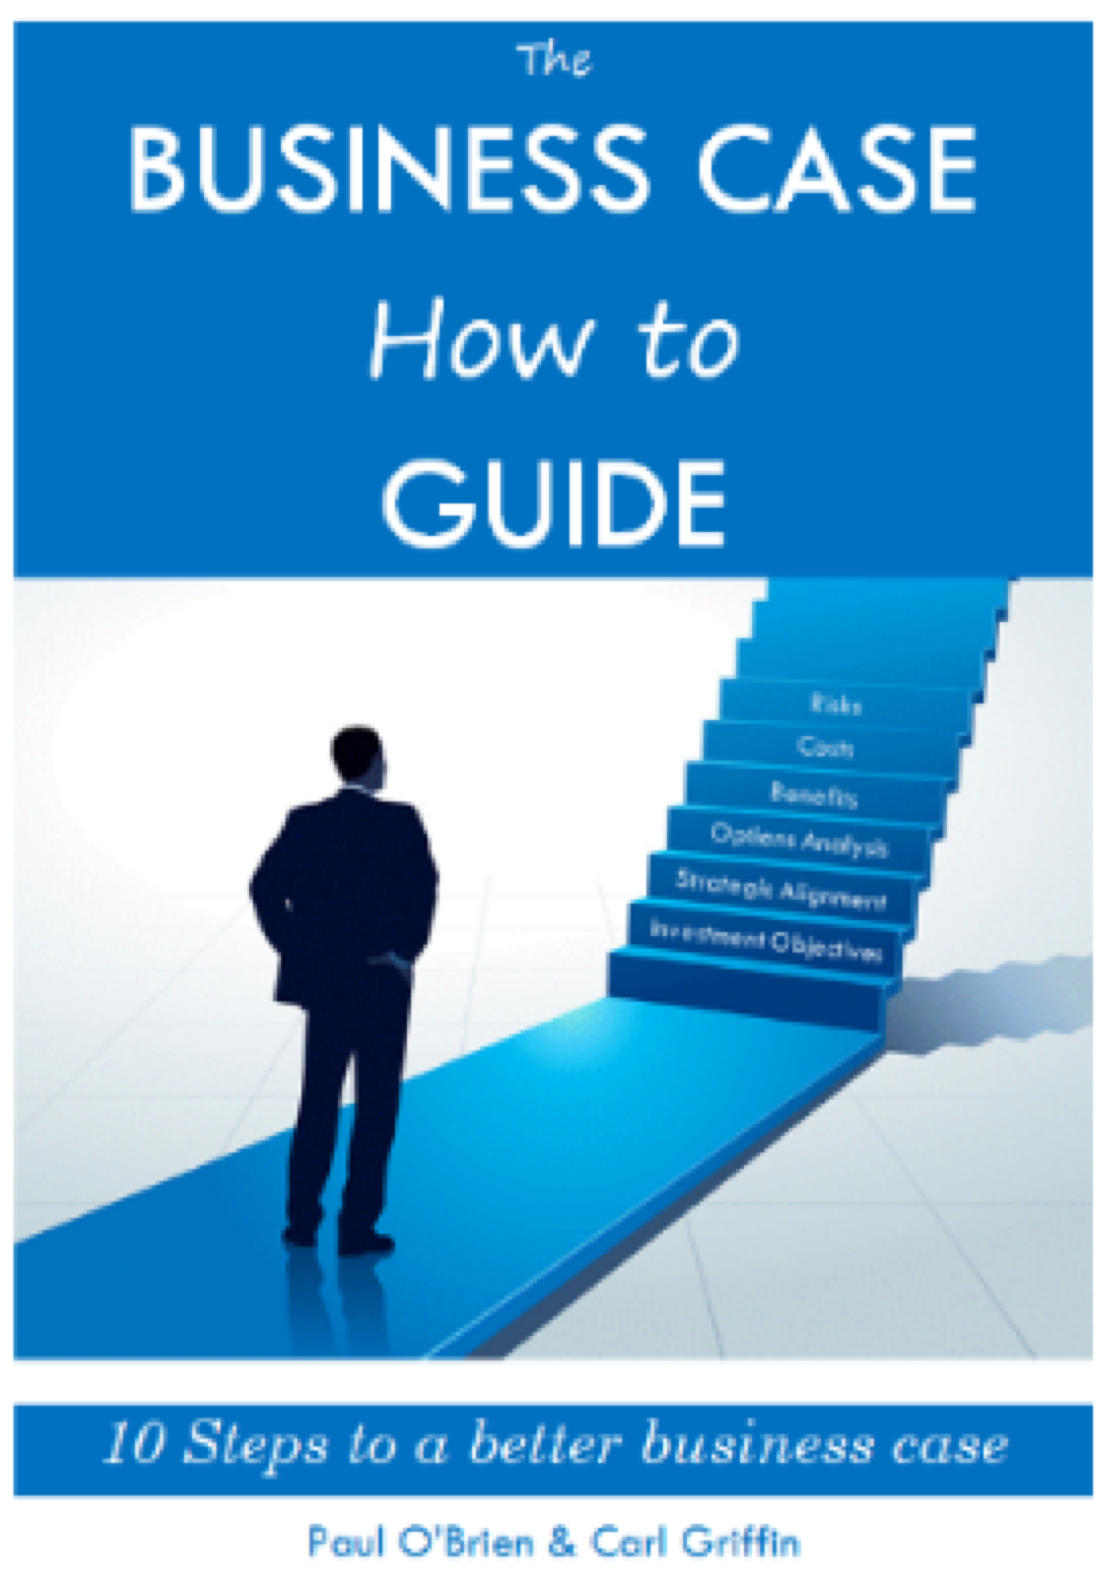 How To Guide cover